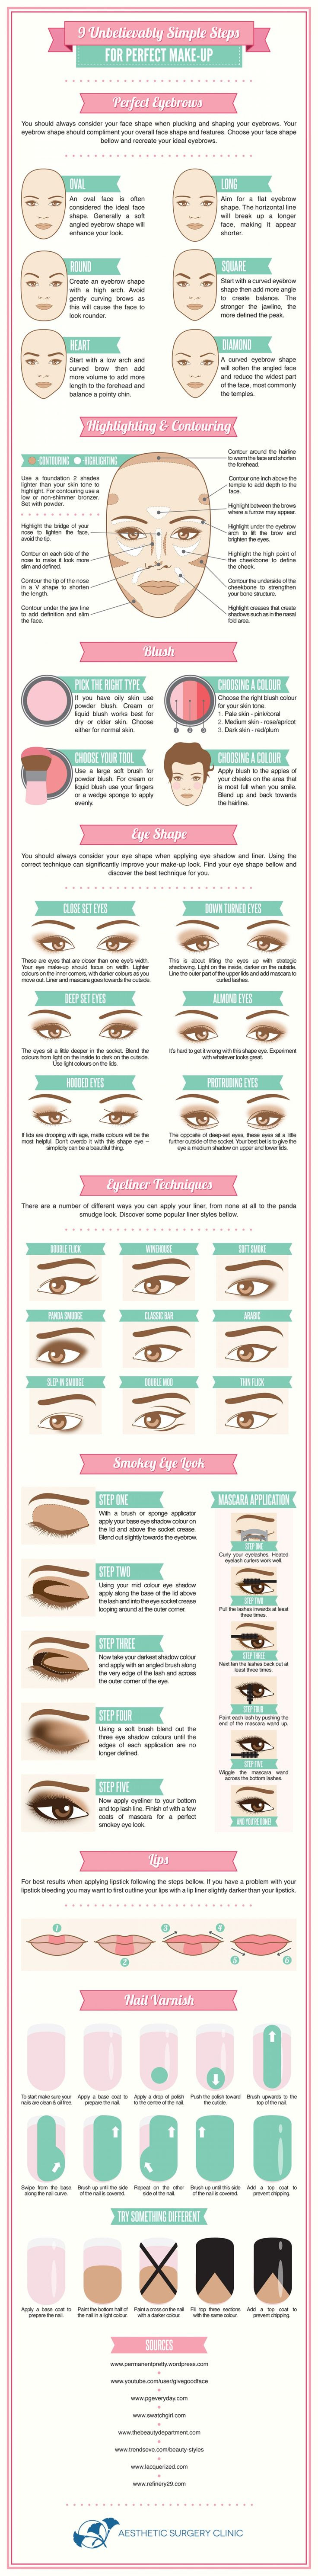 9 Unbelievably Simple Steps For Perfect Make-Up | From Visual.ly | DIY & Crafts